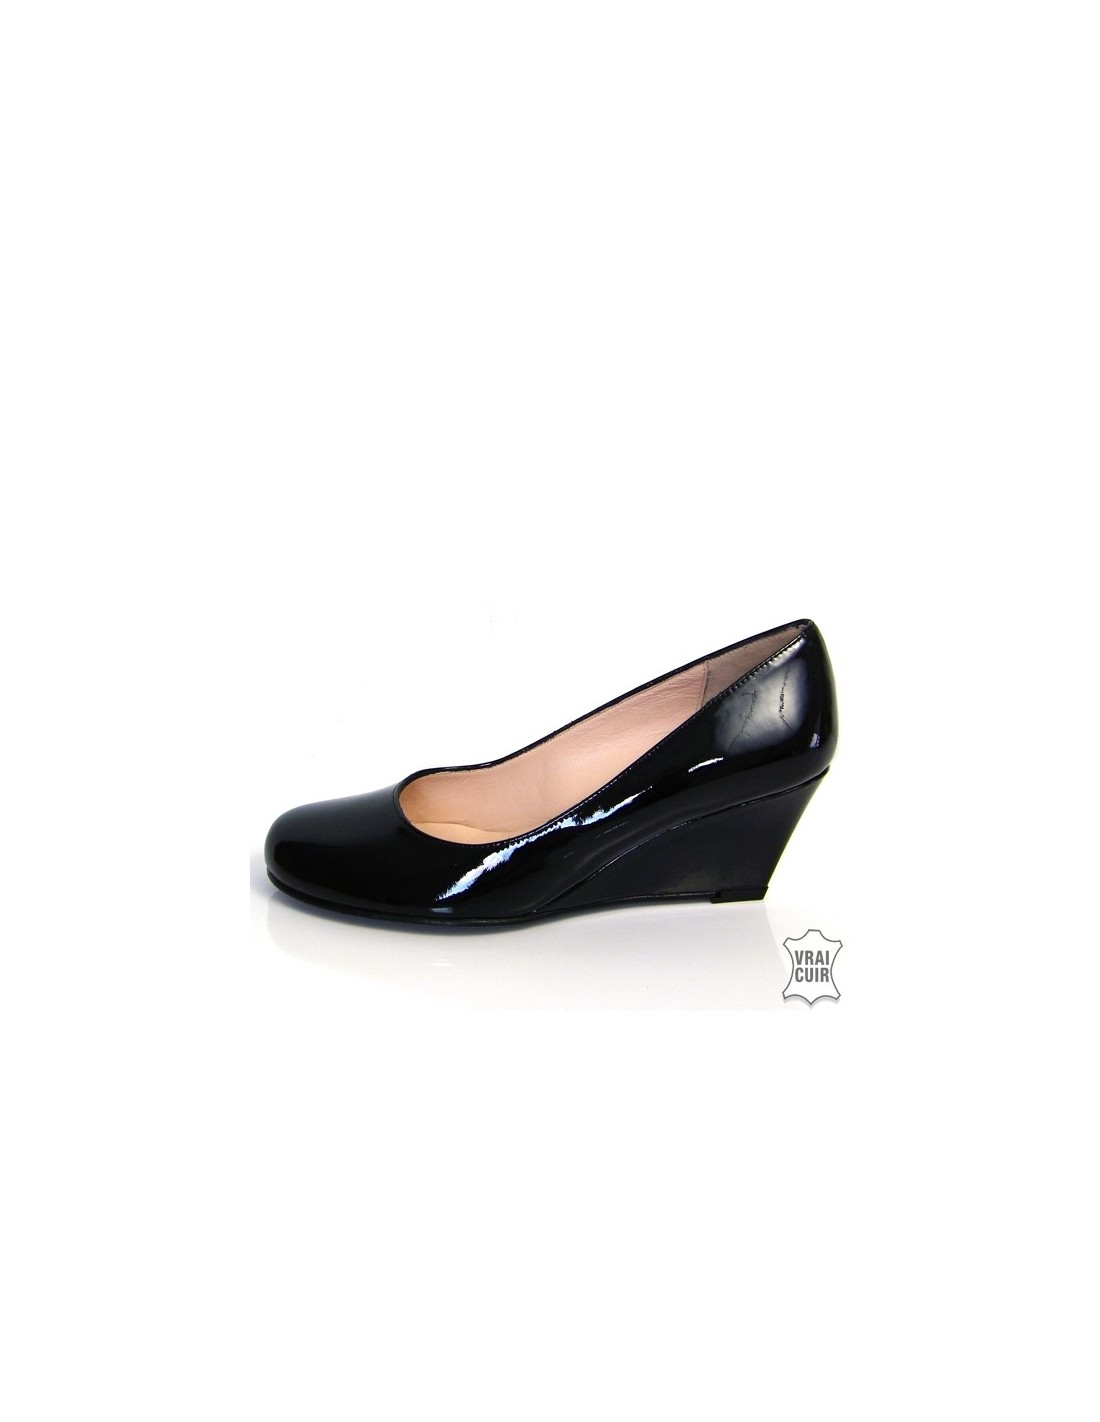 CHAUSSURES? FEMME TALONS COMPENSEES